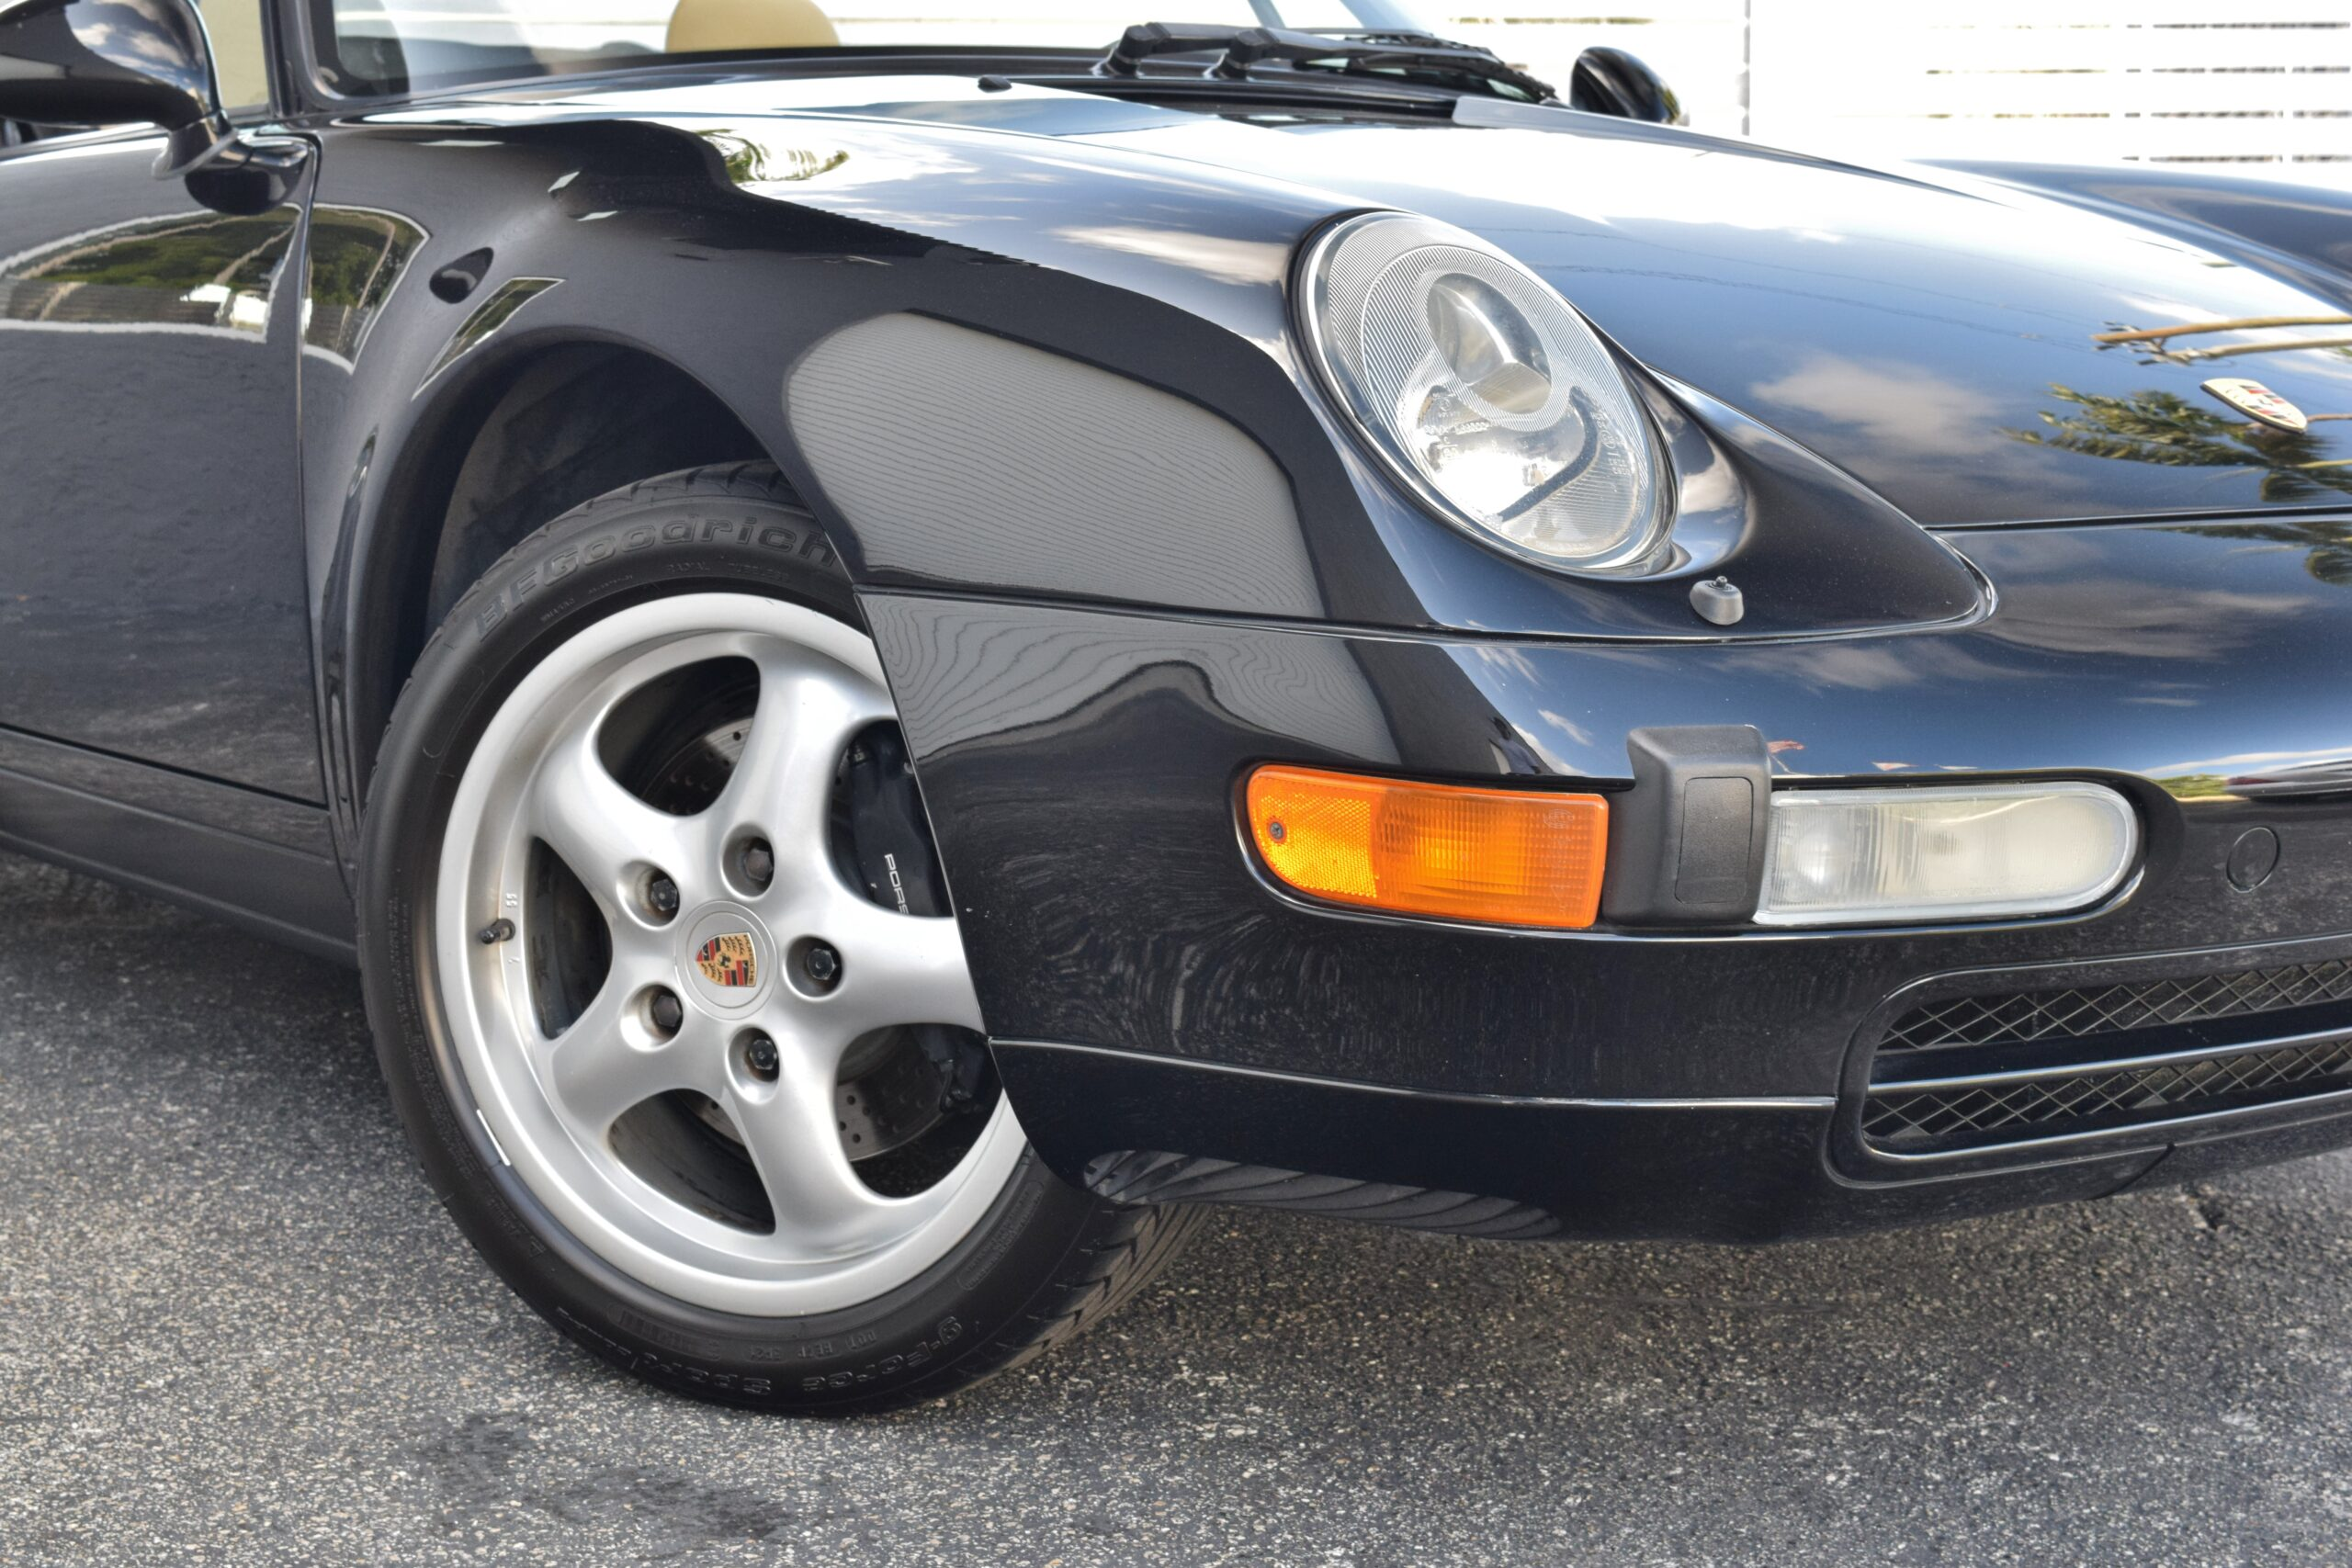 1995 Porsche 911 Carrera 993 6 Speed – Desirable Color Combination- Meticulously Maintained – West Coast Car